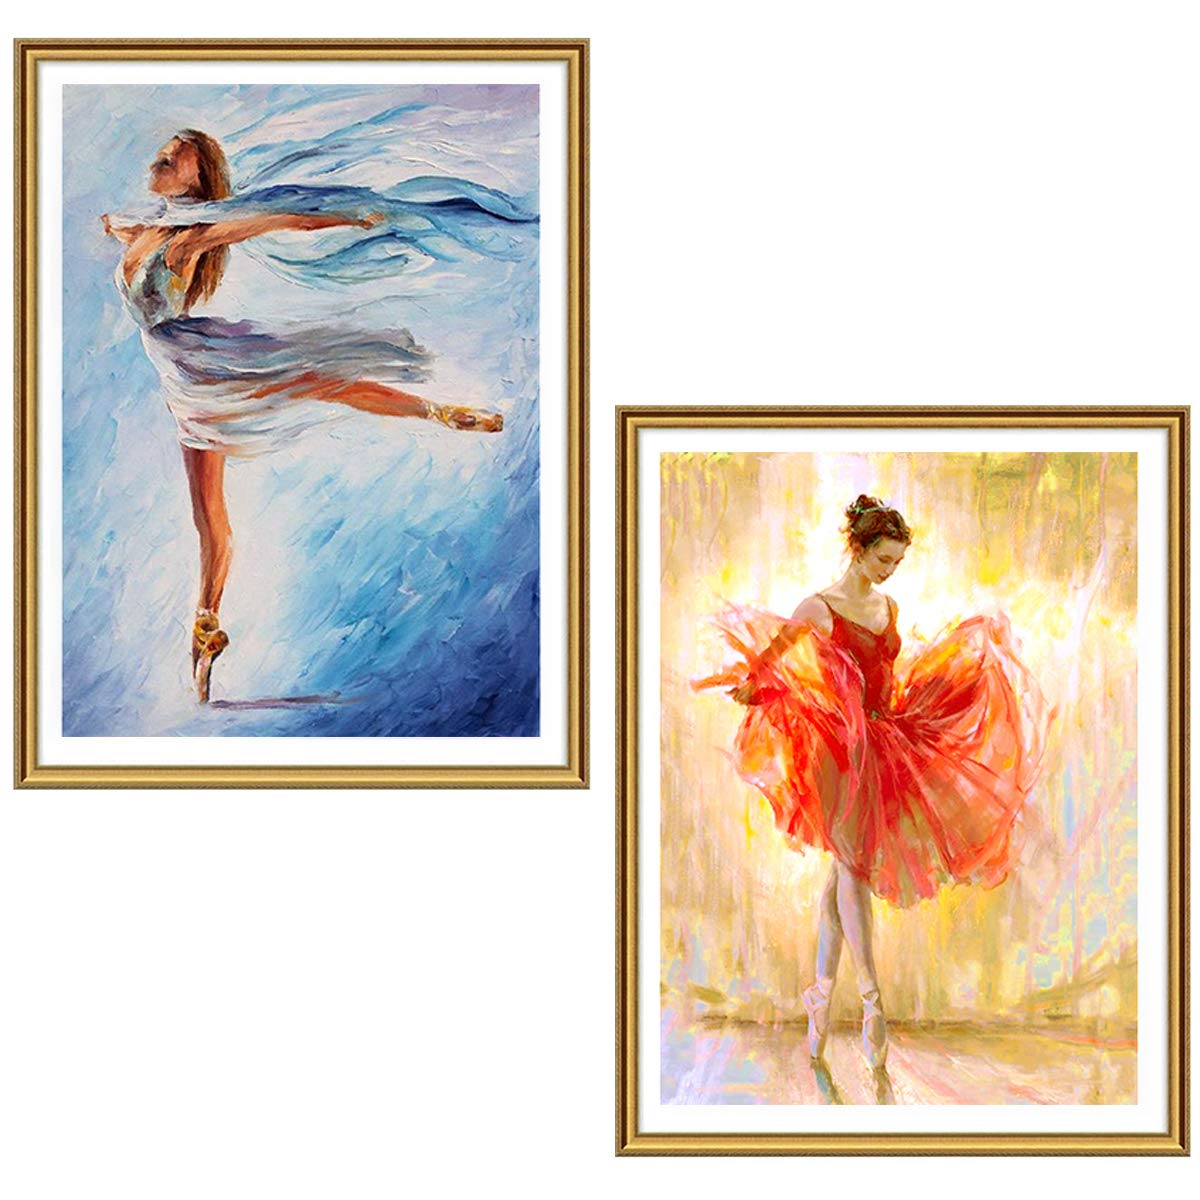 Ginfonr 2 Pack 5D Diamond Painting Dancers by Number Kits, Ballerina Paint with Diamonds Full Drill Art Crystal DIY Embroidery Rhinestone Decor Craft (12x16 inch)